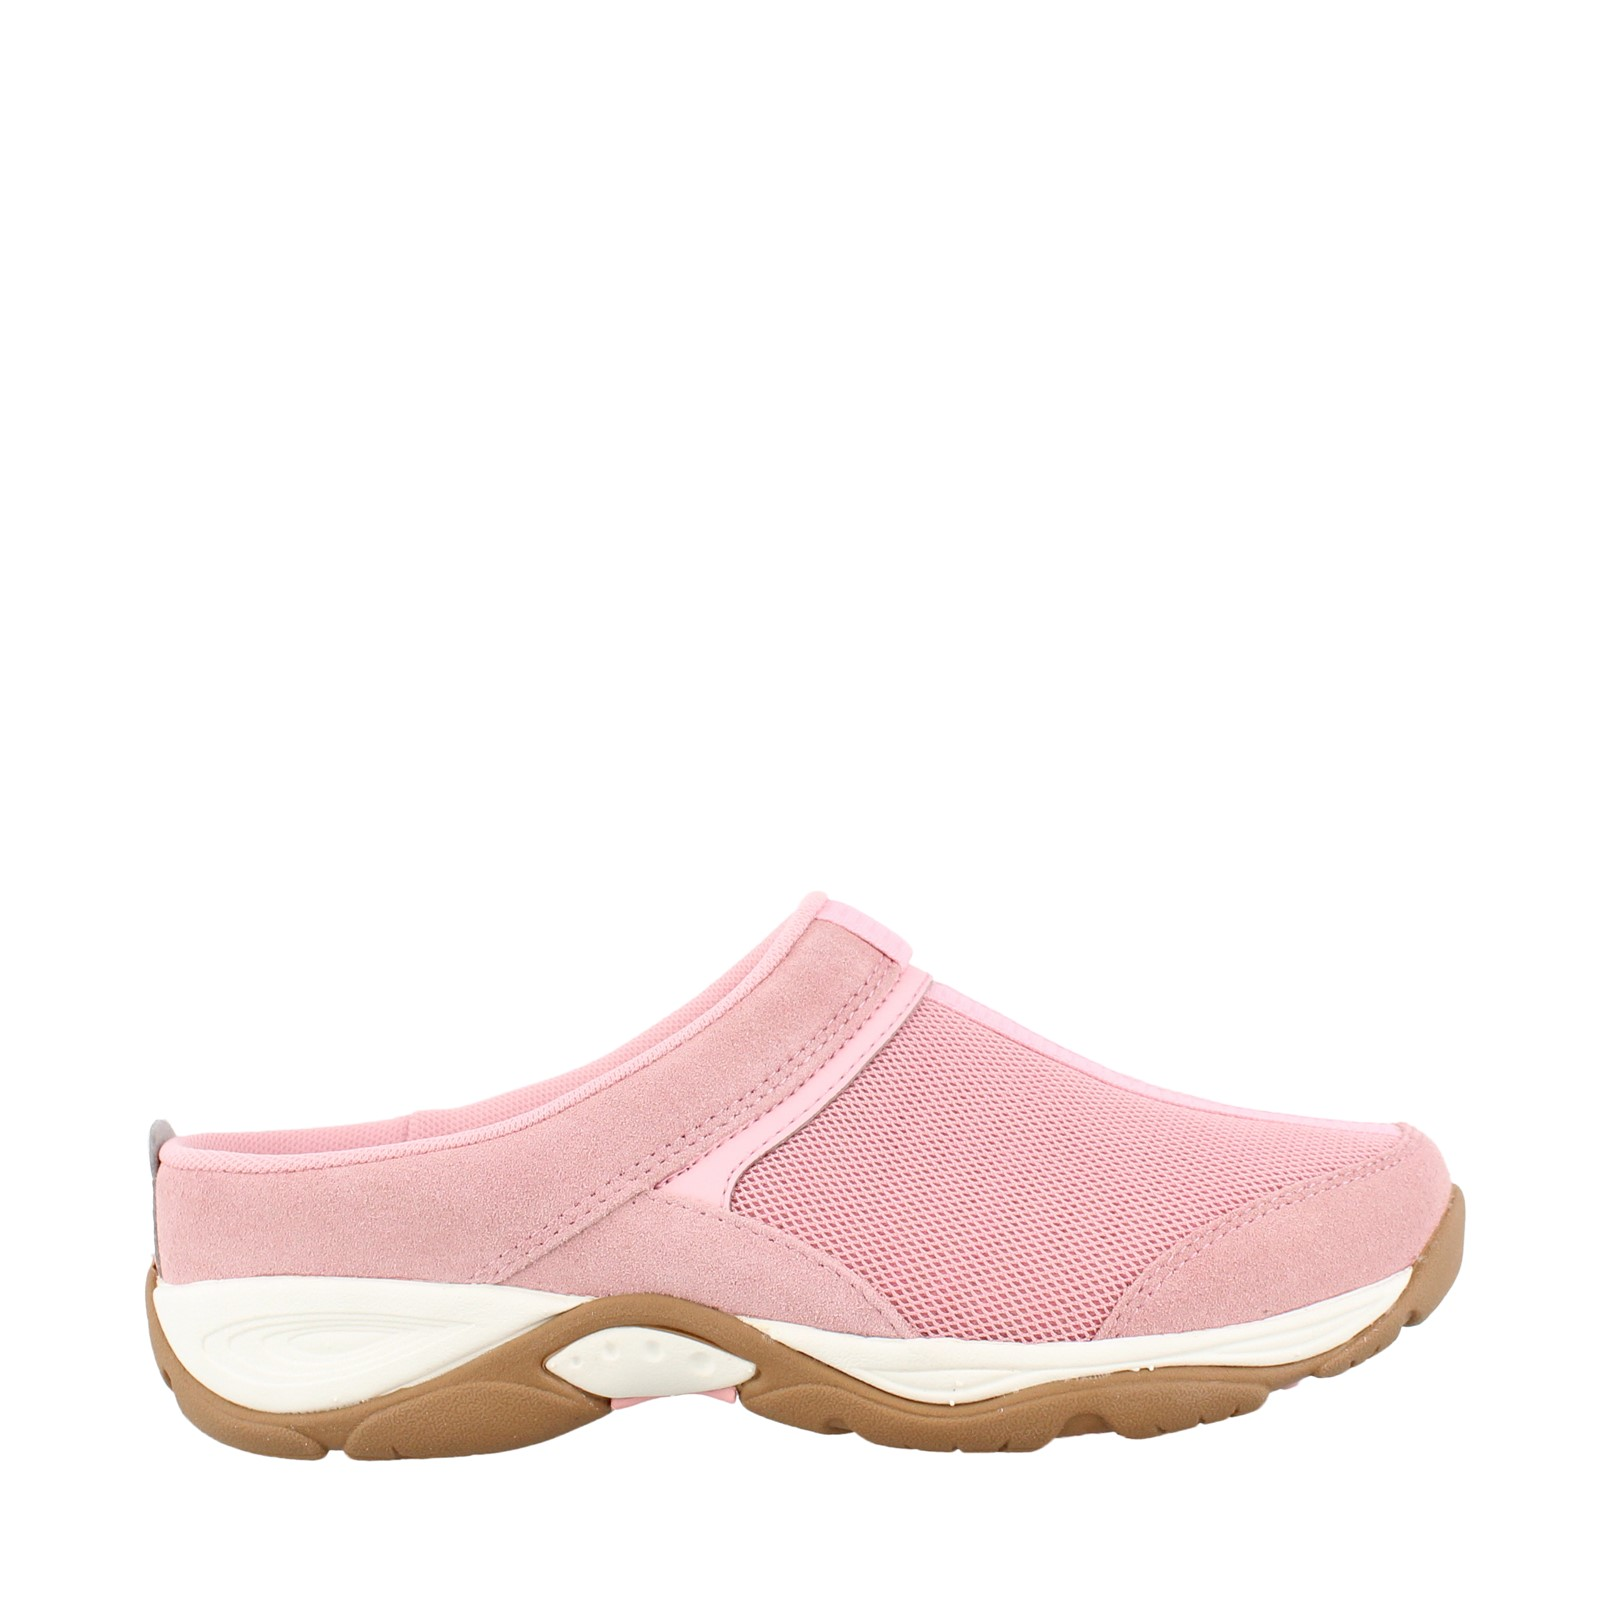 Women's Easy Spirit, Ezcool Clog